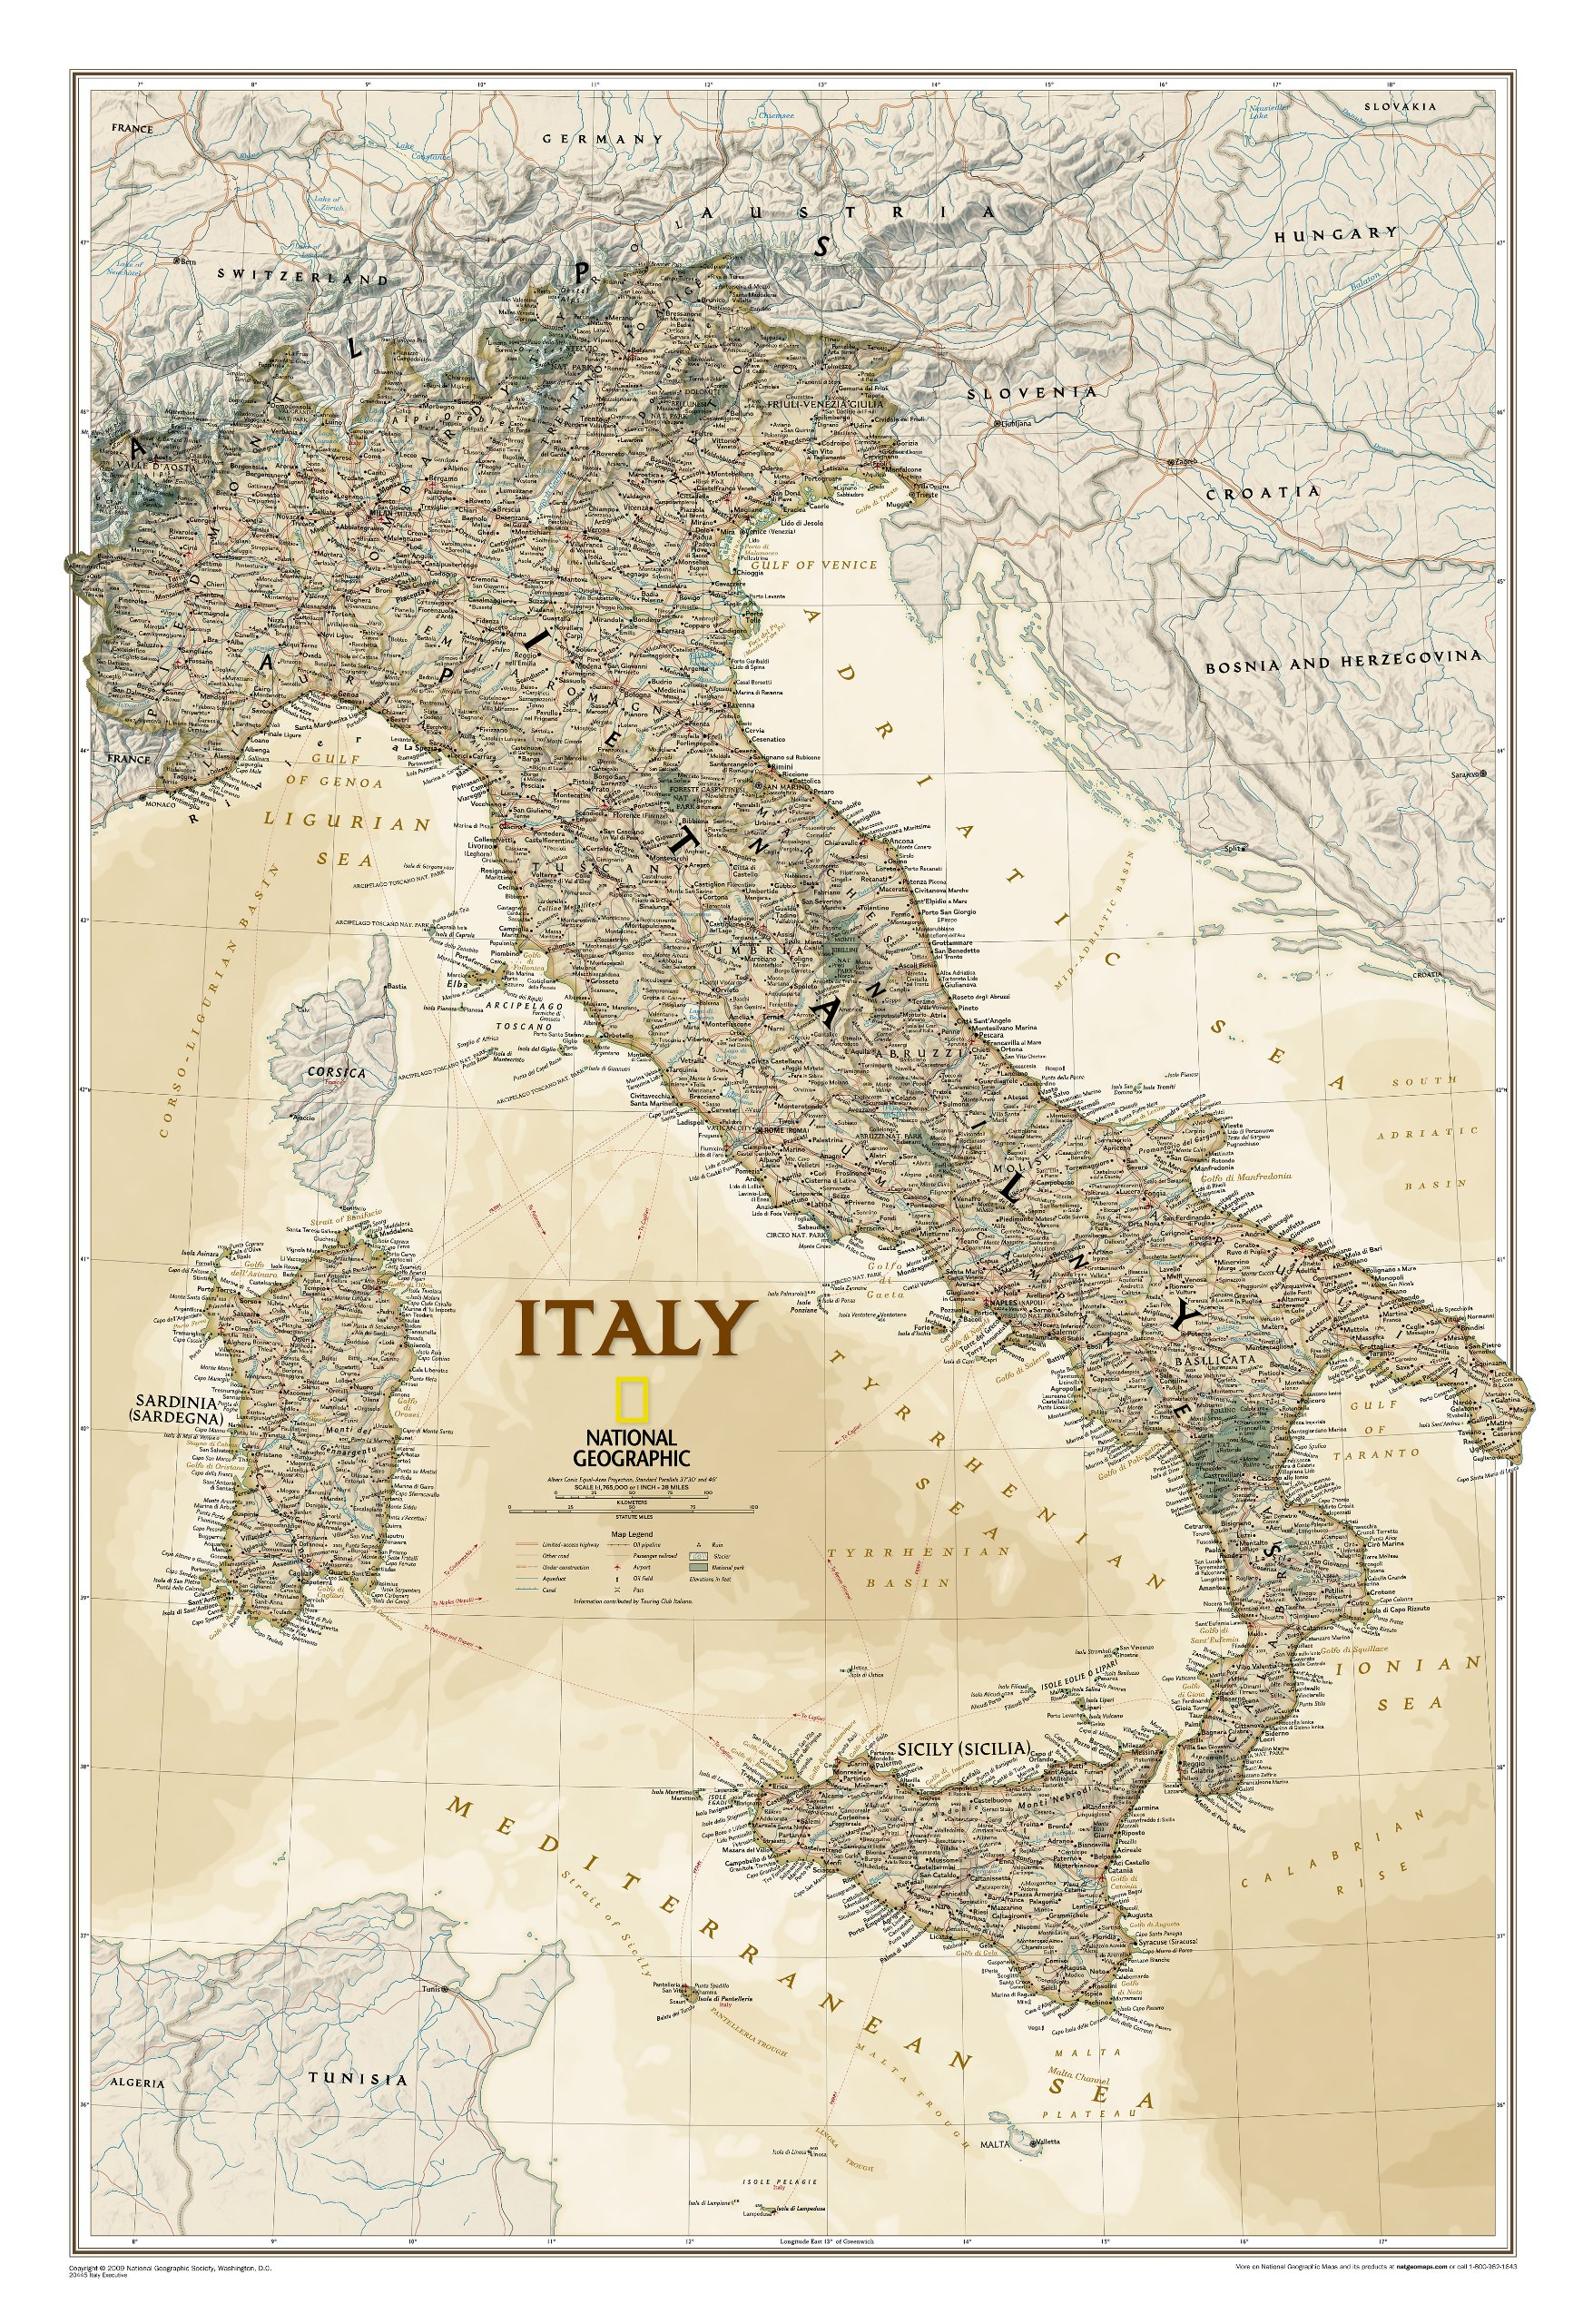 Map Of Italy For The Wall National Geographic